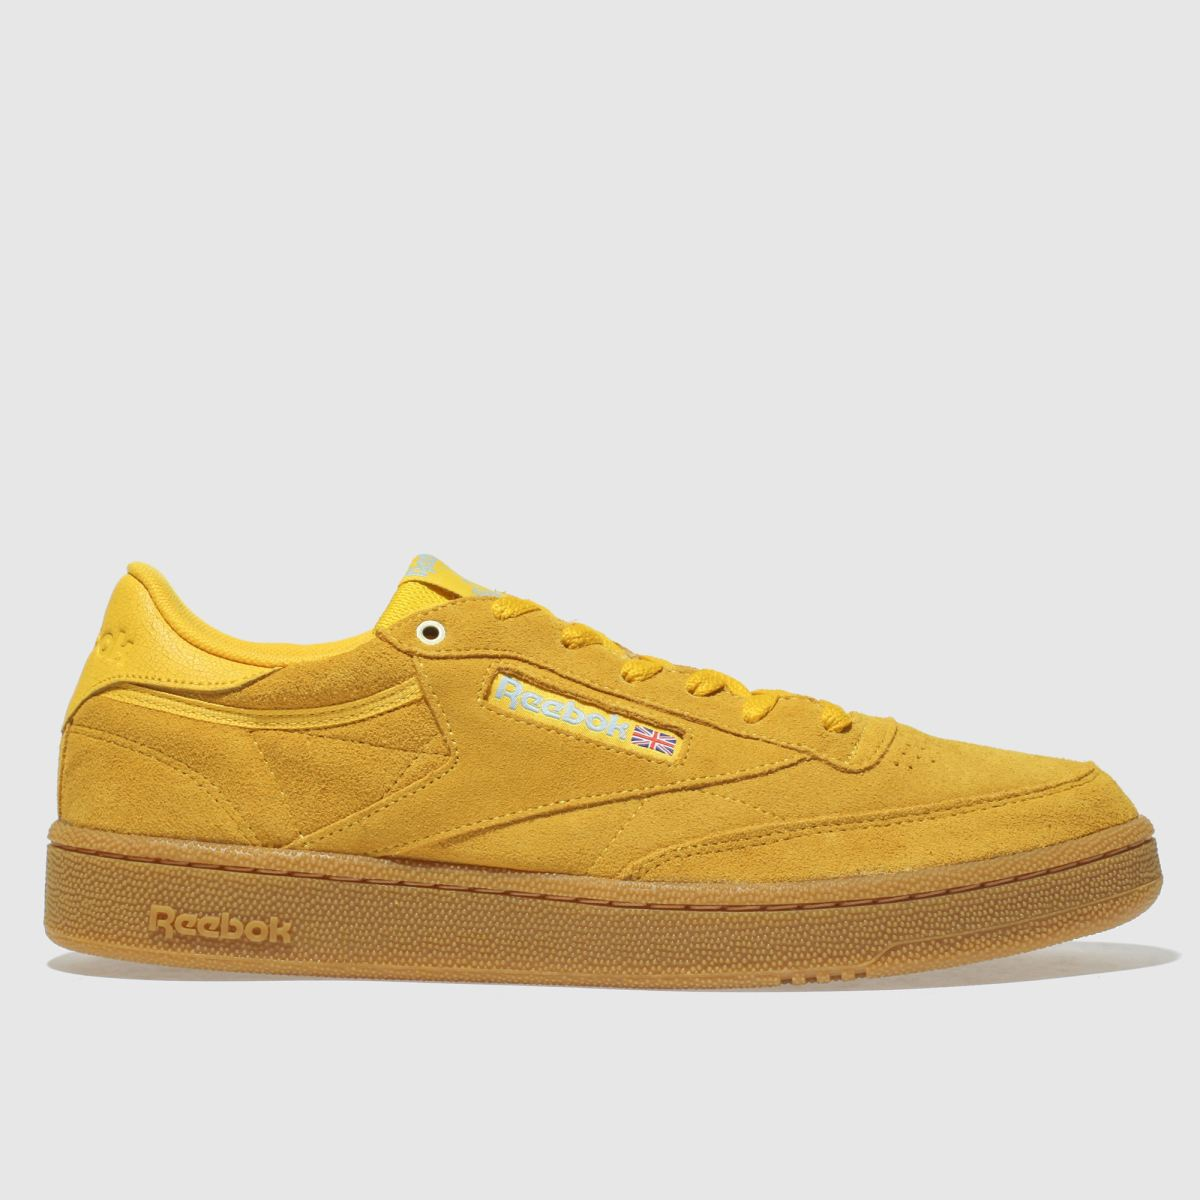 Reebok Yellow Club C 85 Trainers